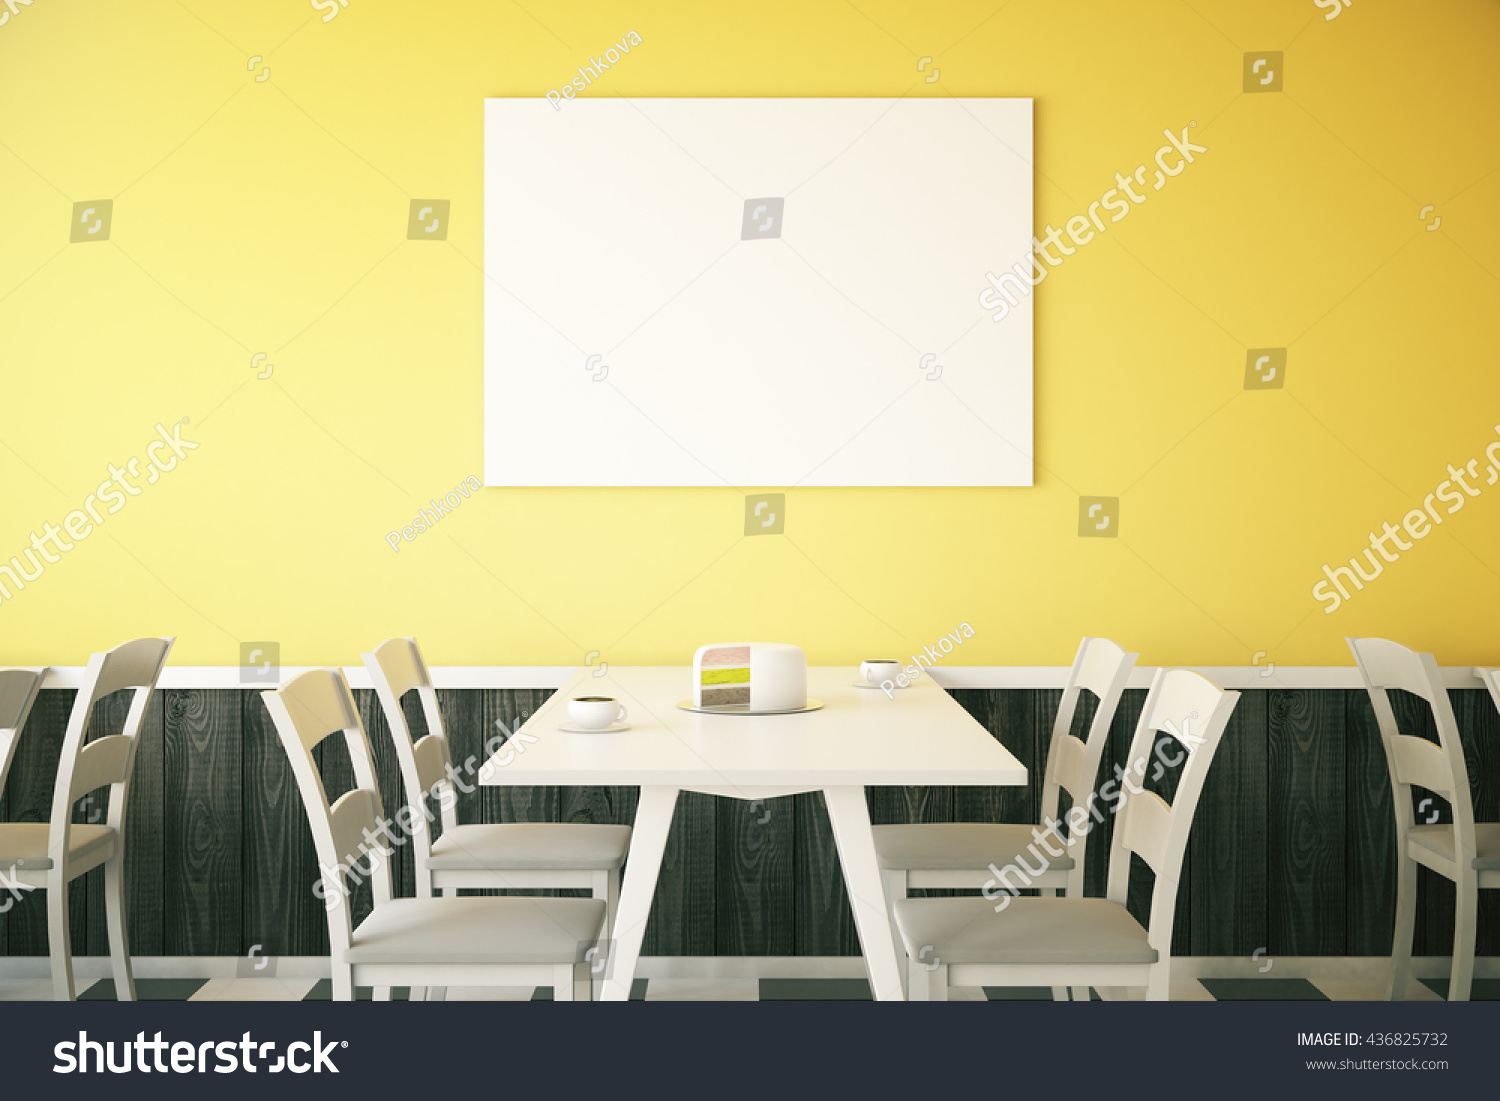 Cafe interior with cake on table and blank poster on bright yellow wall Mock up 3D Rendering